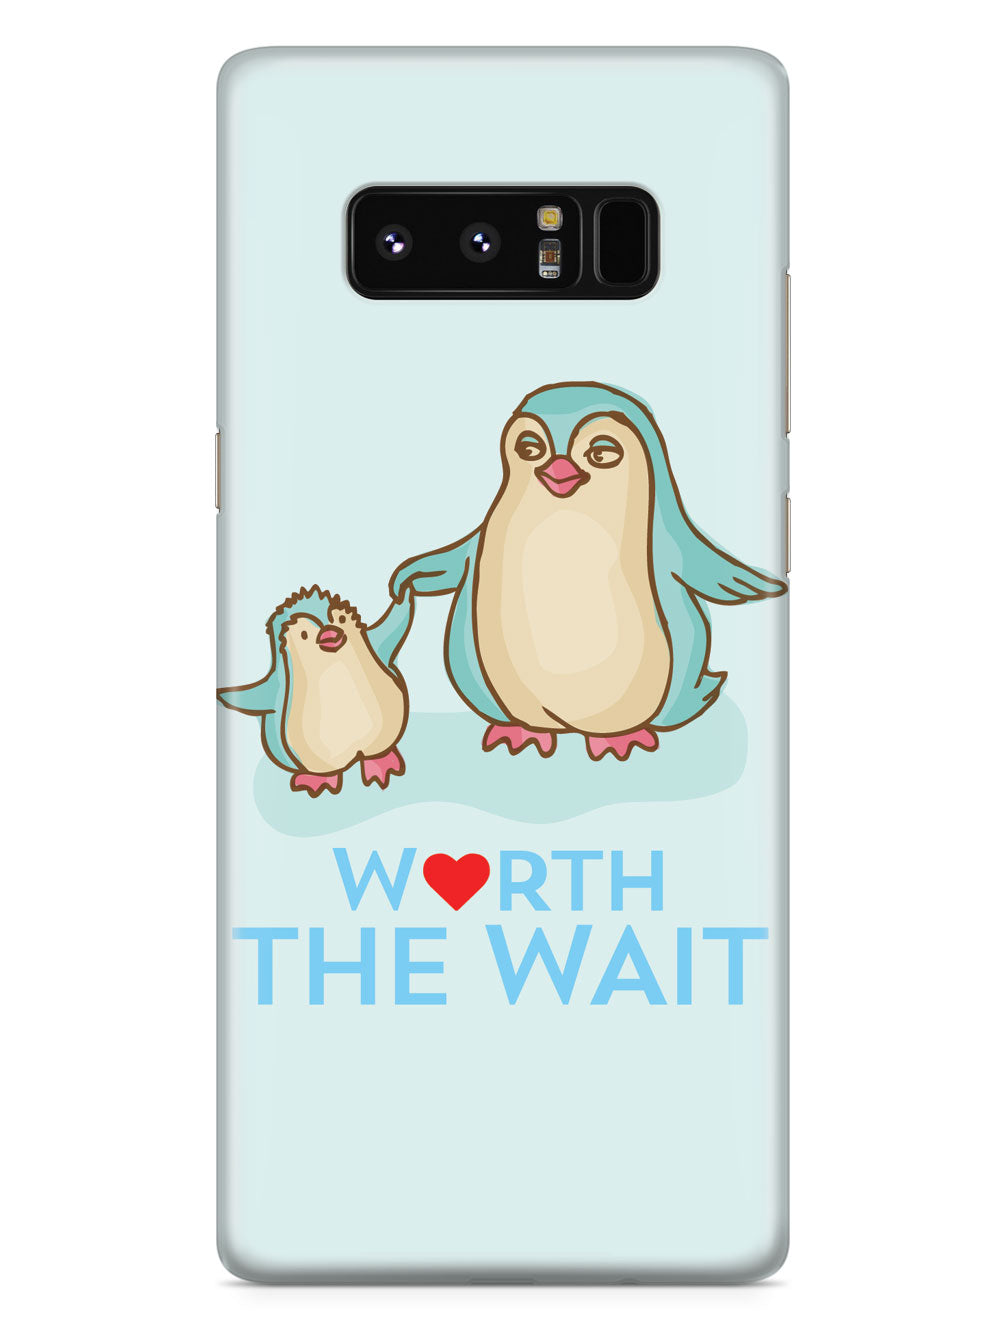 Worth The Wait - Penguin - Adoption - Black Case